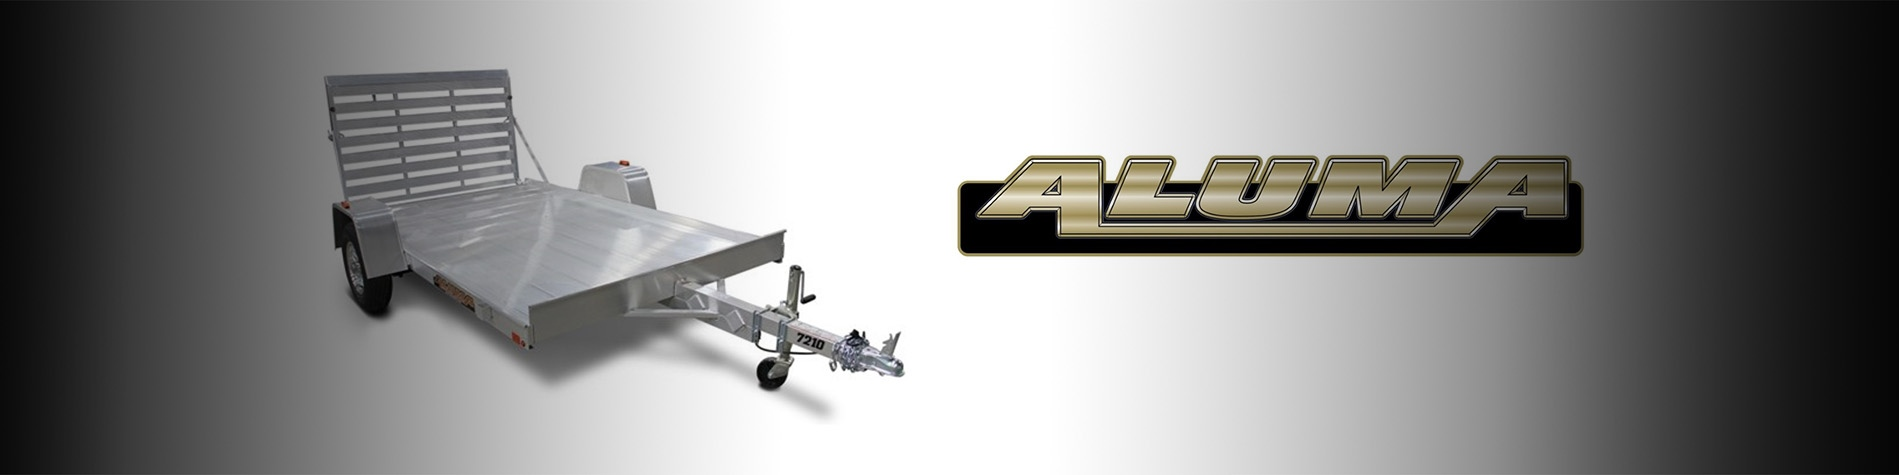 ATV Trailers | Southern Wholesale Trailers | Flatbed, Dump